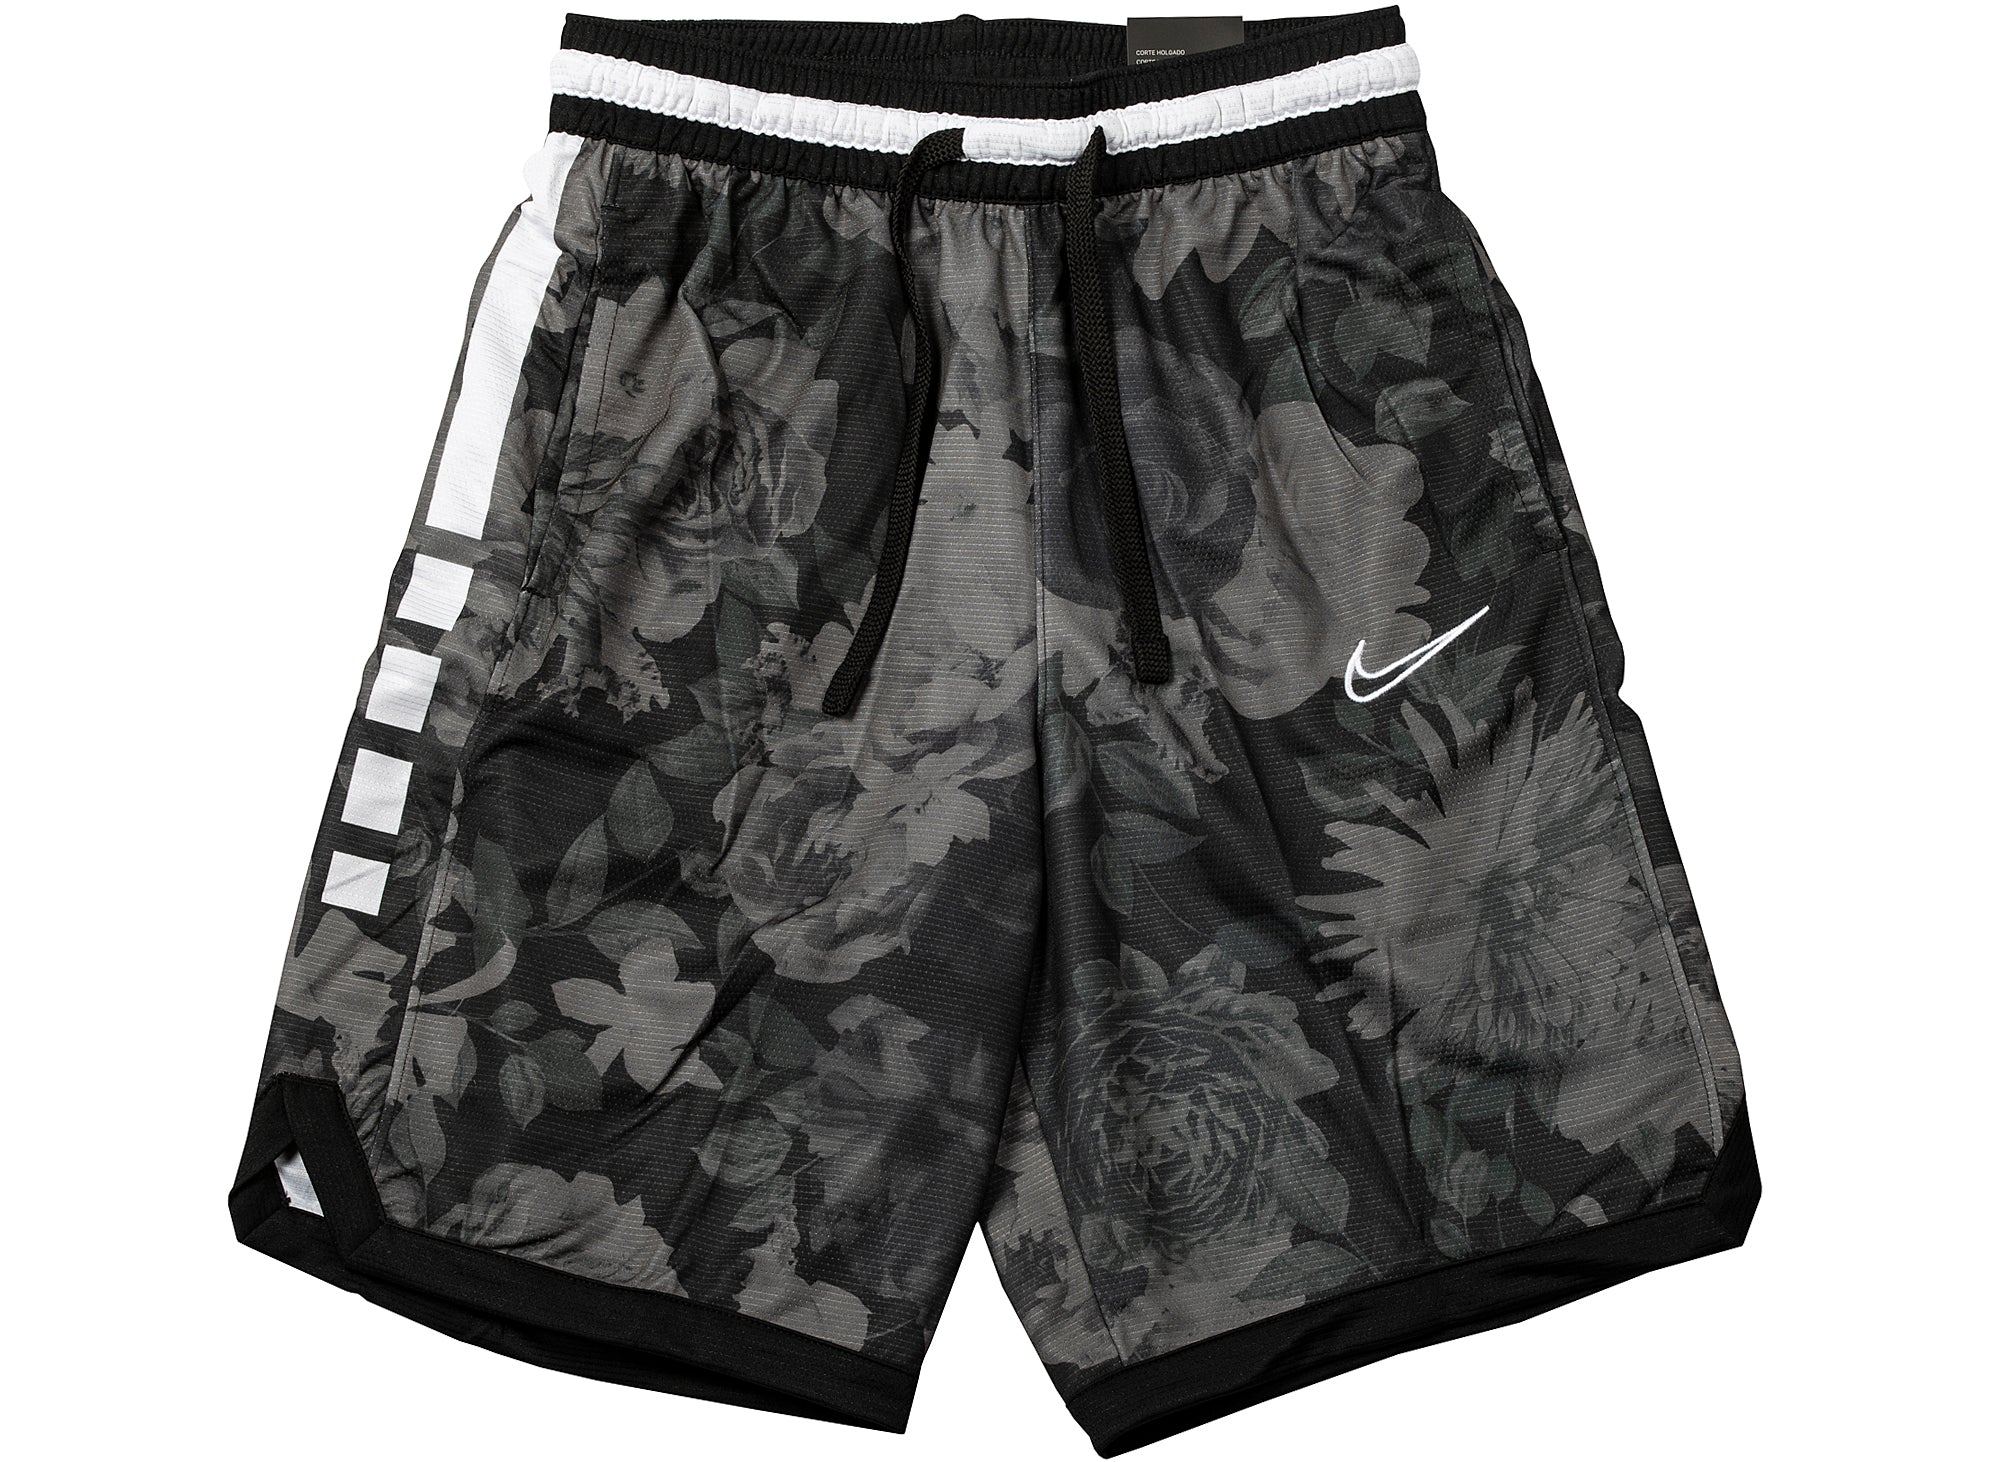 Men's Nike Elite Stripe Shorts xld